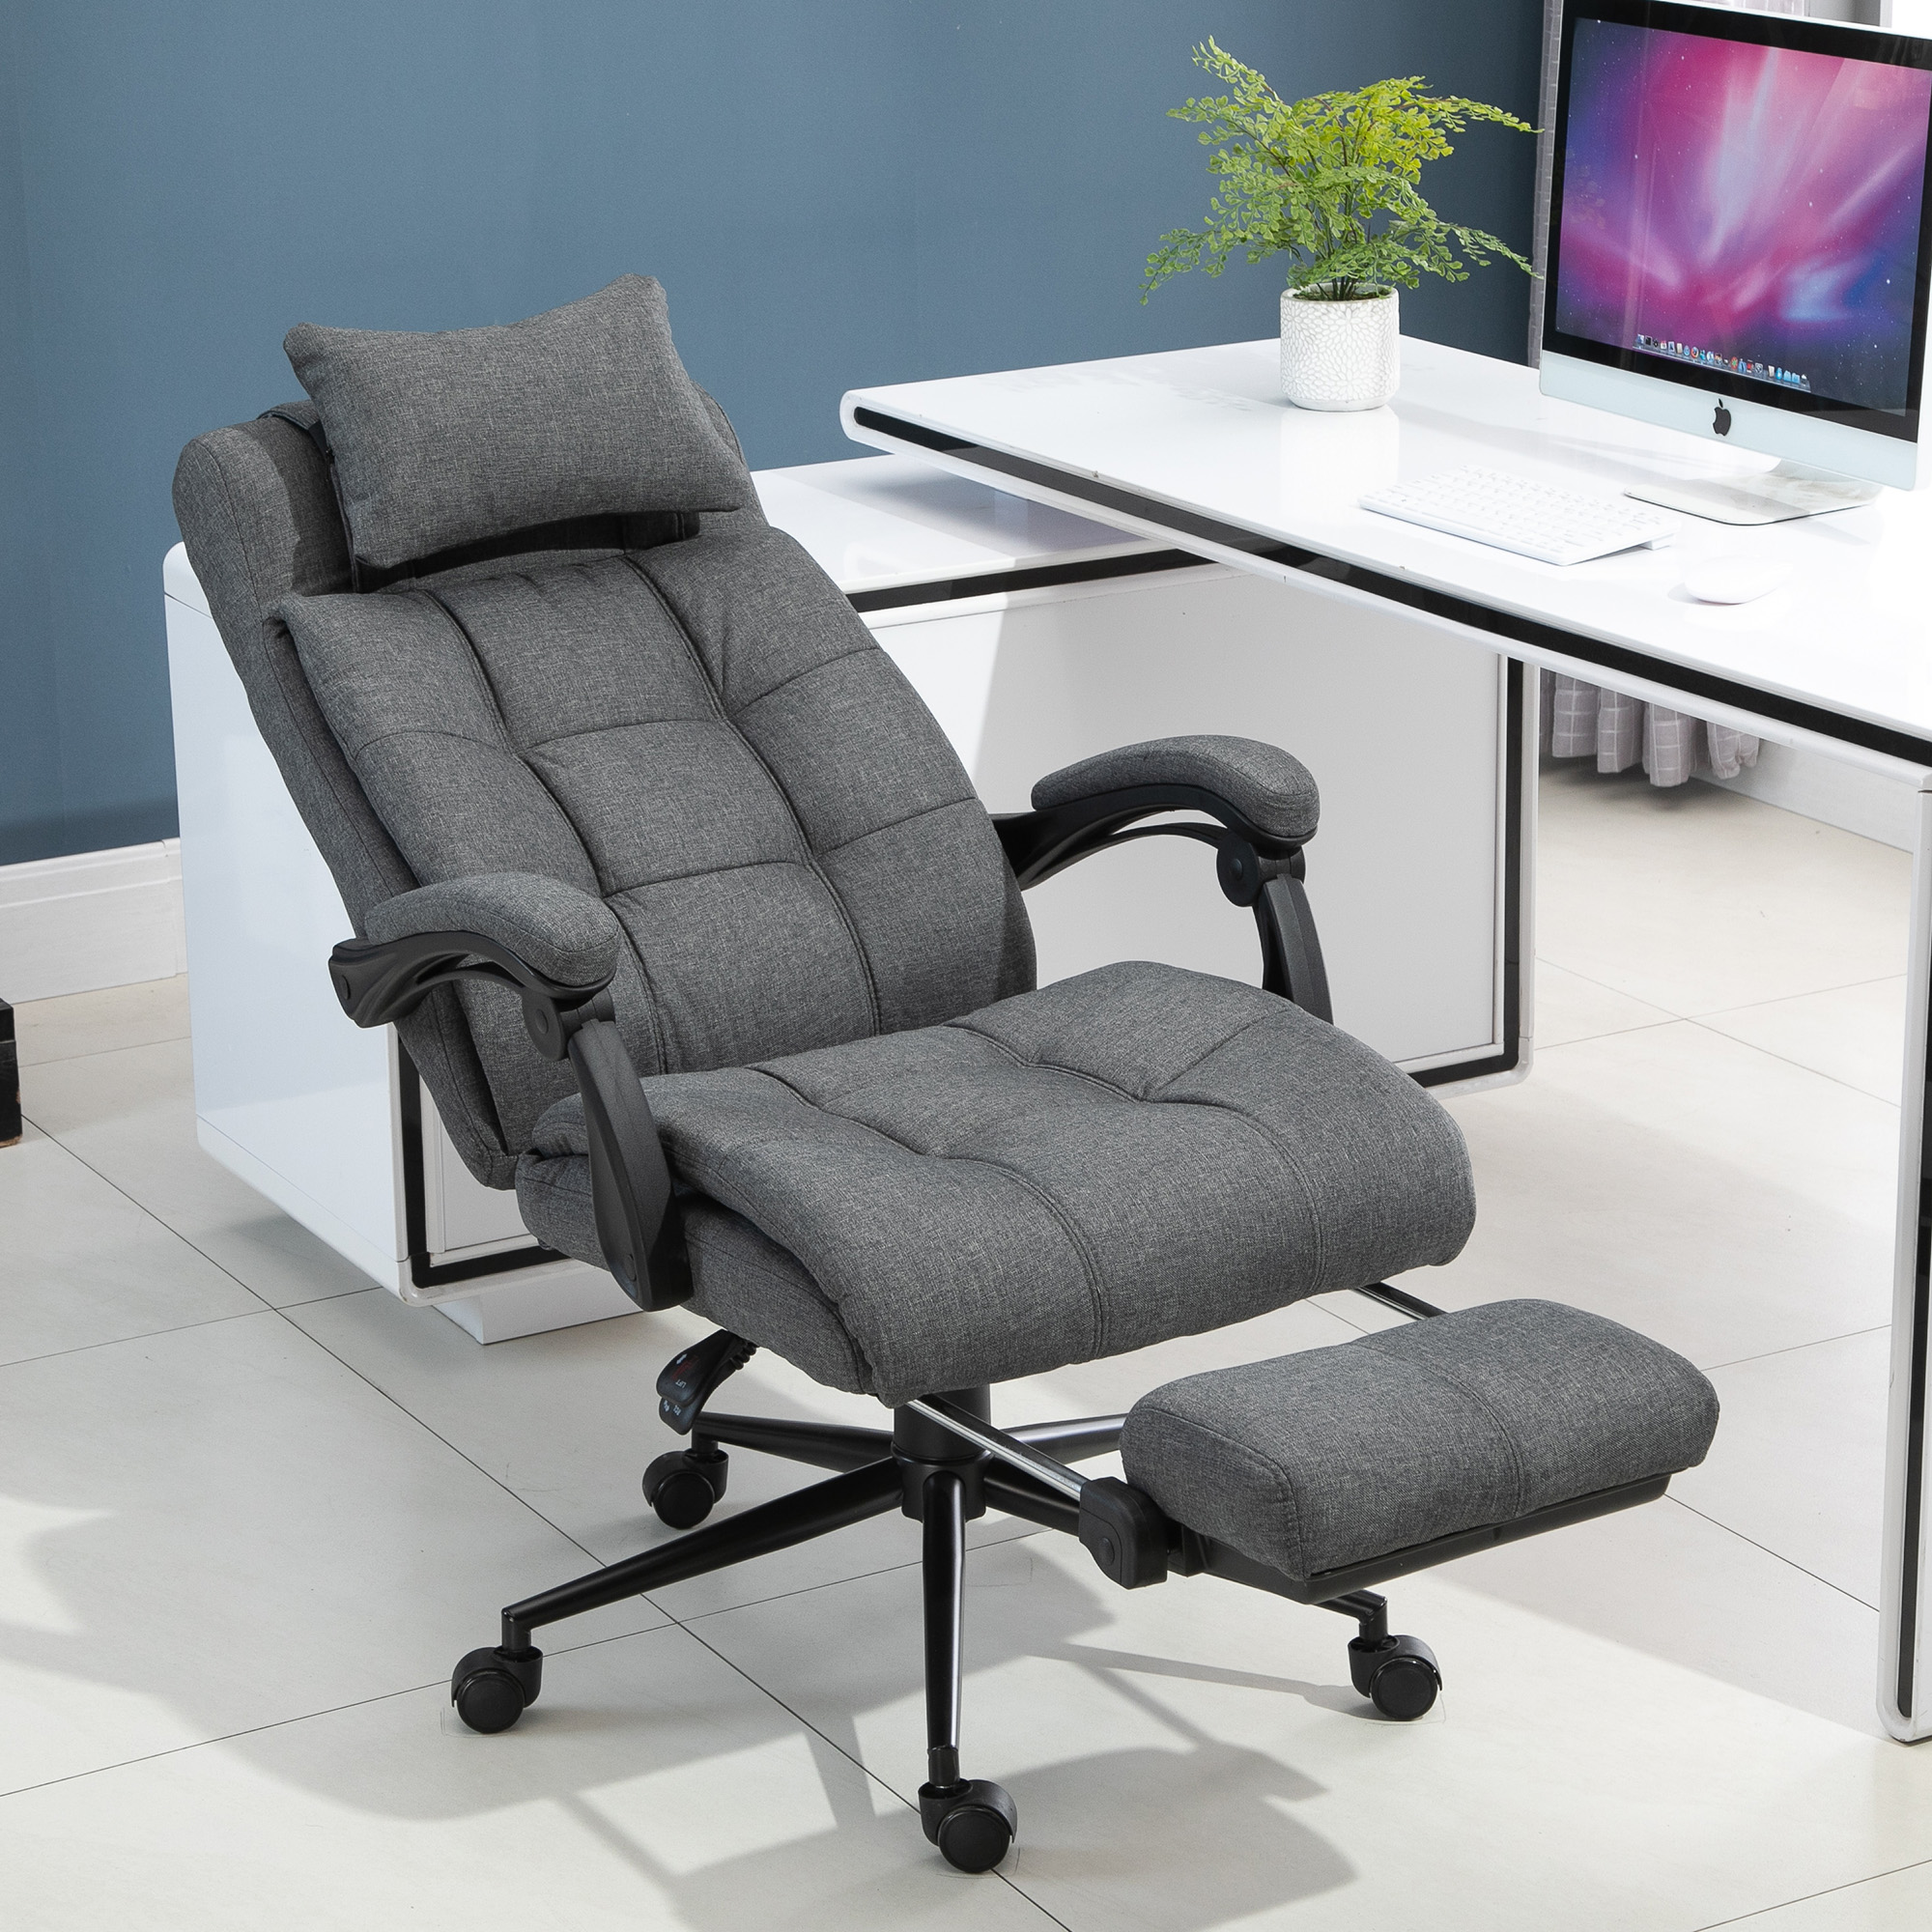 Reclining Office Chair Adjustable Rolling Swivel Chair ...